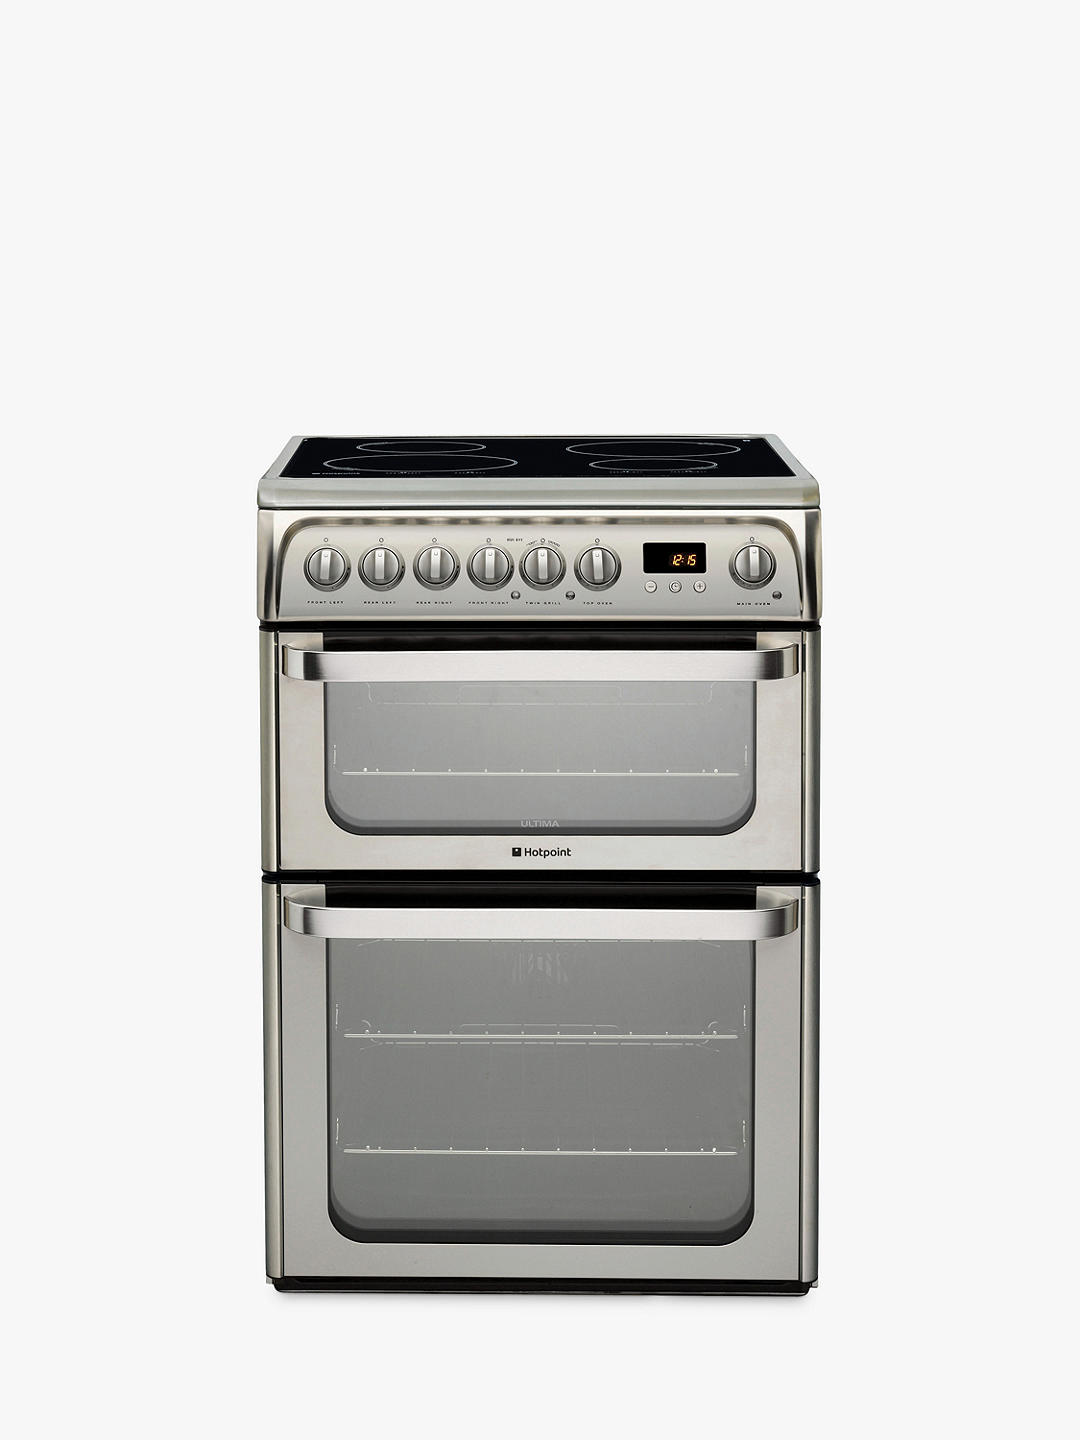 Buy Hotpoint HUI611 X Double Electric Cooker, Stainless Steel Online at johnlewis.com